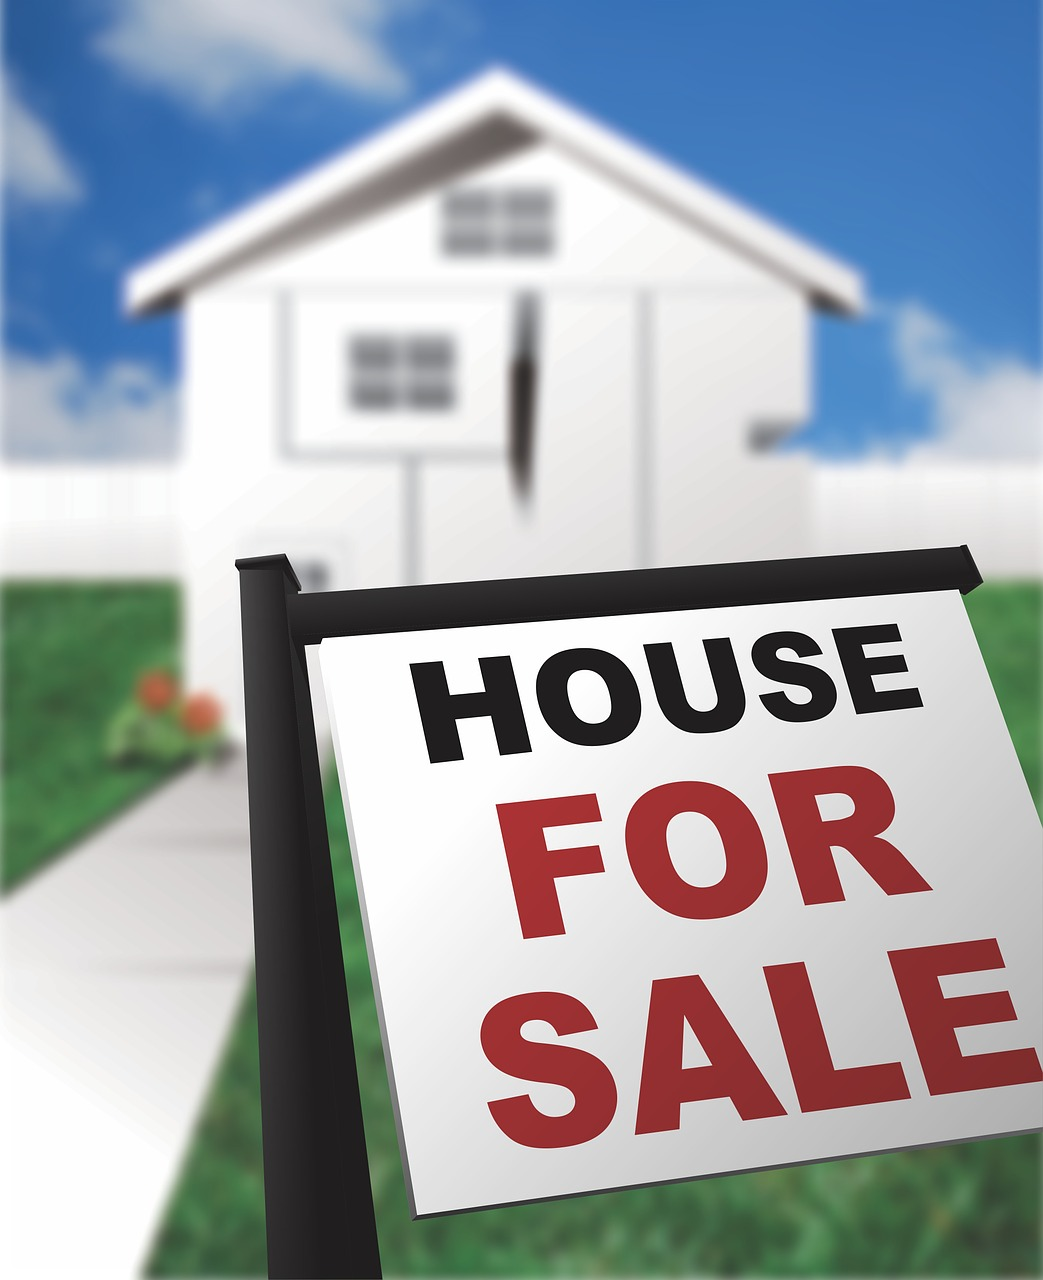 House for sale (PD)